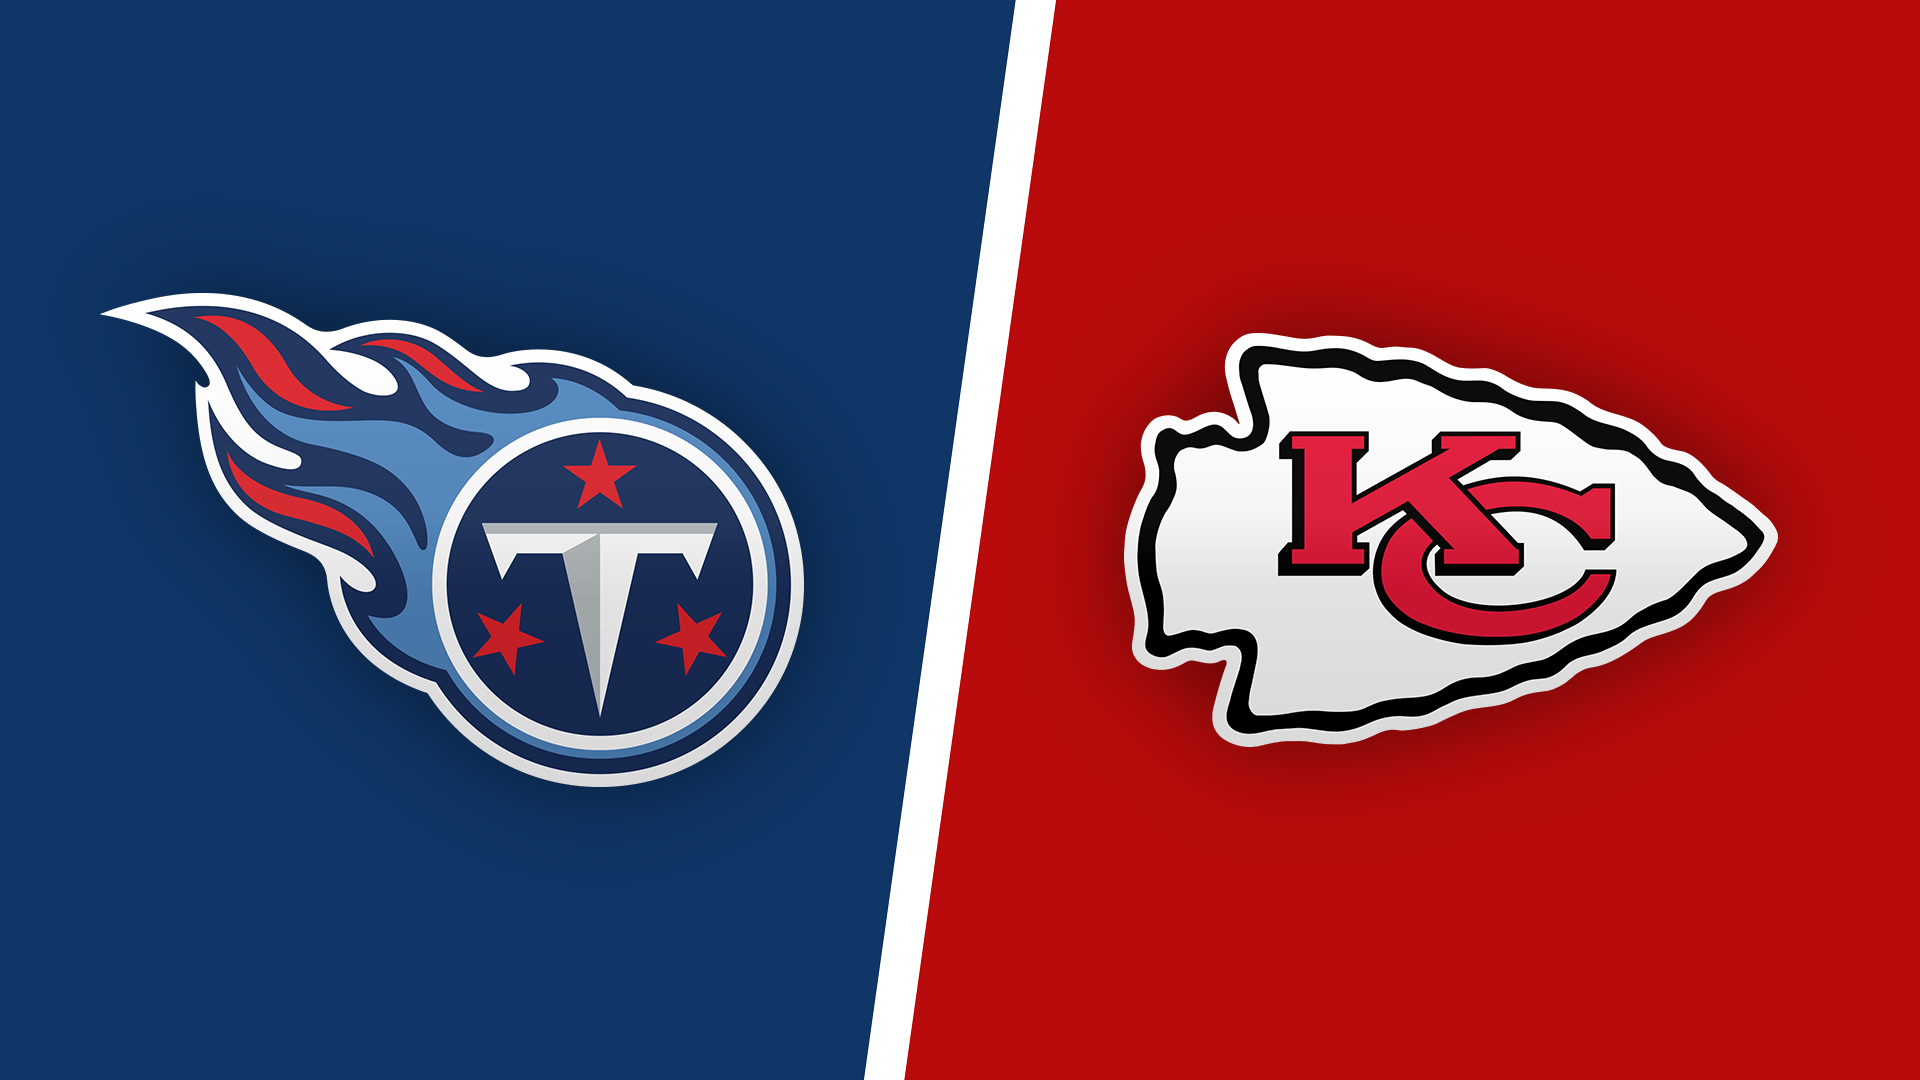 How To Watch The 2020 Afc Championship Tennessee Titans At Kansas City Chiefs On Cbs Live For Free On Apple Tv Roku Fire Tv Ios In 2020 Tennessee Titans Fire Tv Cbs